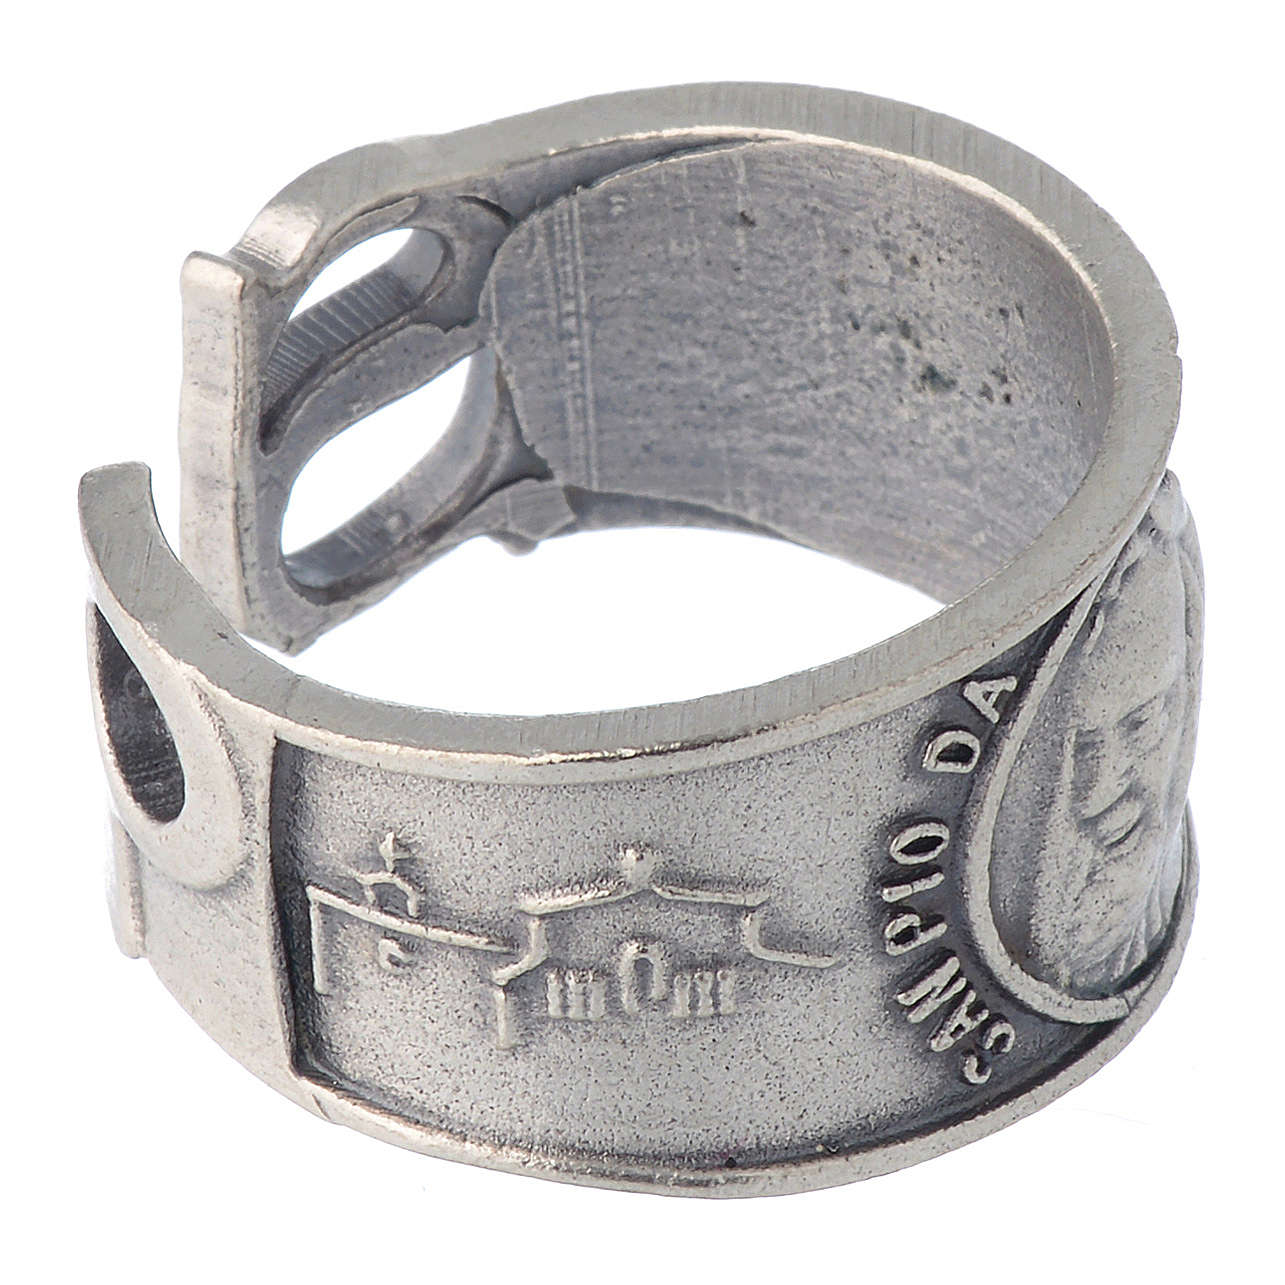 Zamak ring with Our Lady of Lourdes image 3